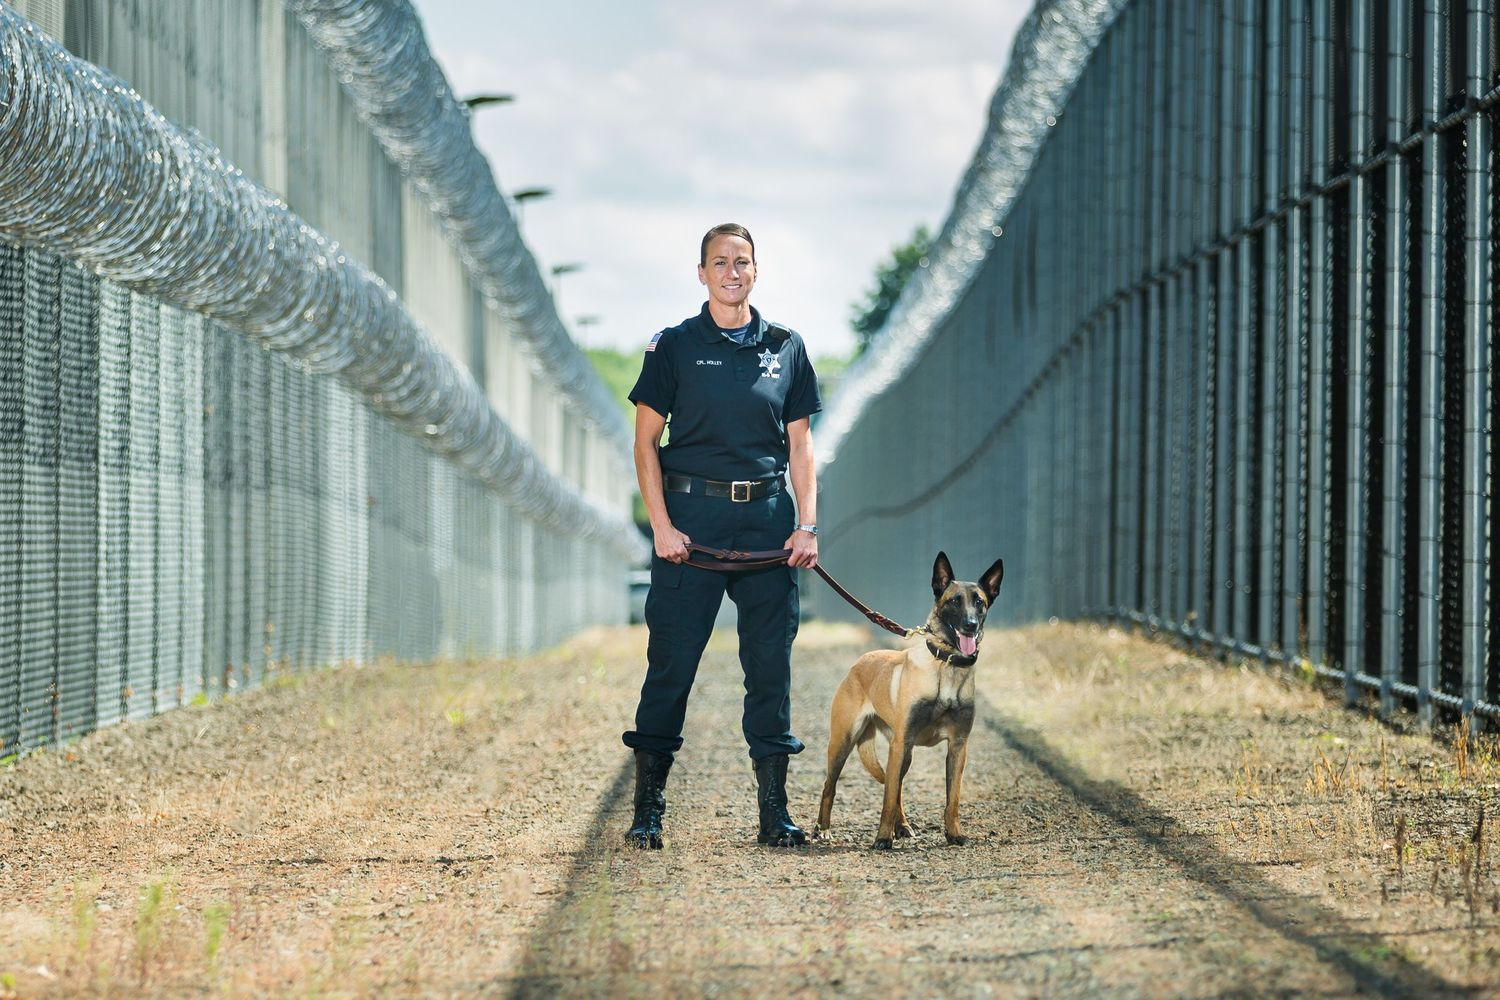 Correction Facility Police K-9 Hampden County Sheriff's Dept Female Handler Malinois